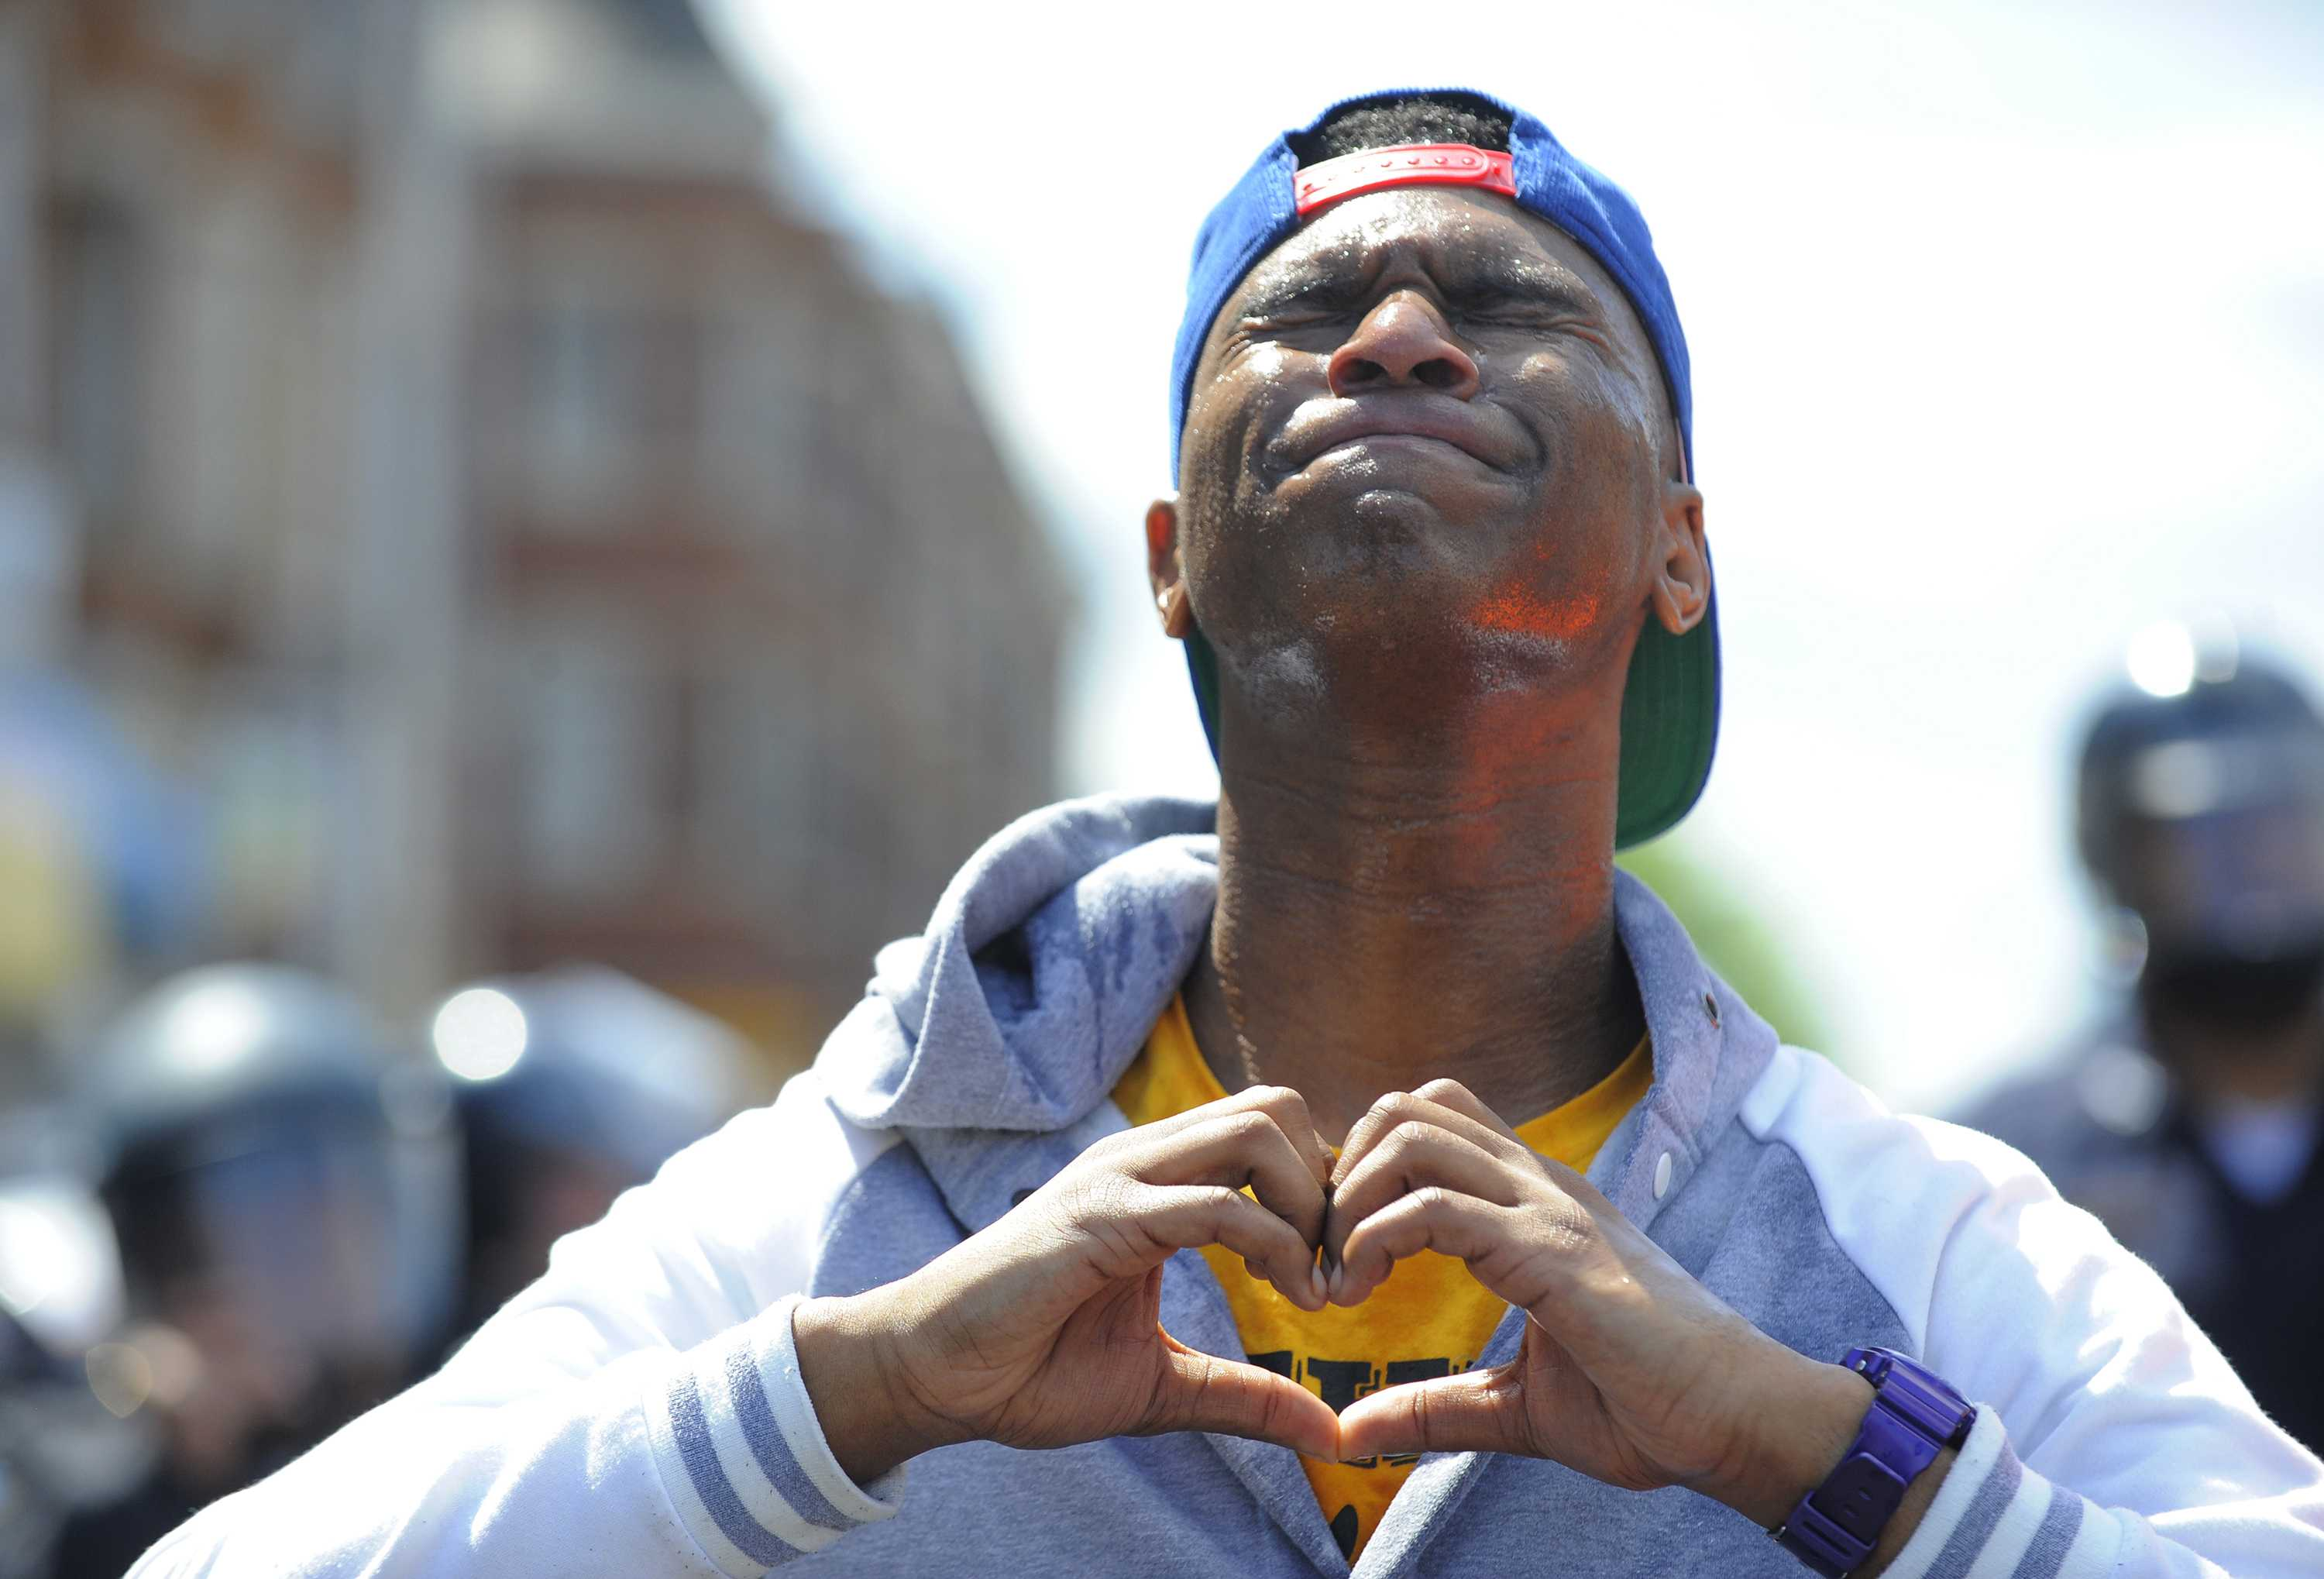 Devante Hill makes a heart with his hands after he was hit with pepper spray after someone threw a bottle at police on Tuesday, April 28, 2015, in Baltimore. (Lloyd Fox/Baltimore Sun/TNS)